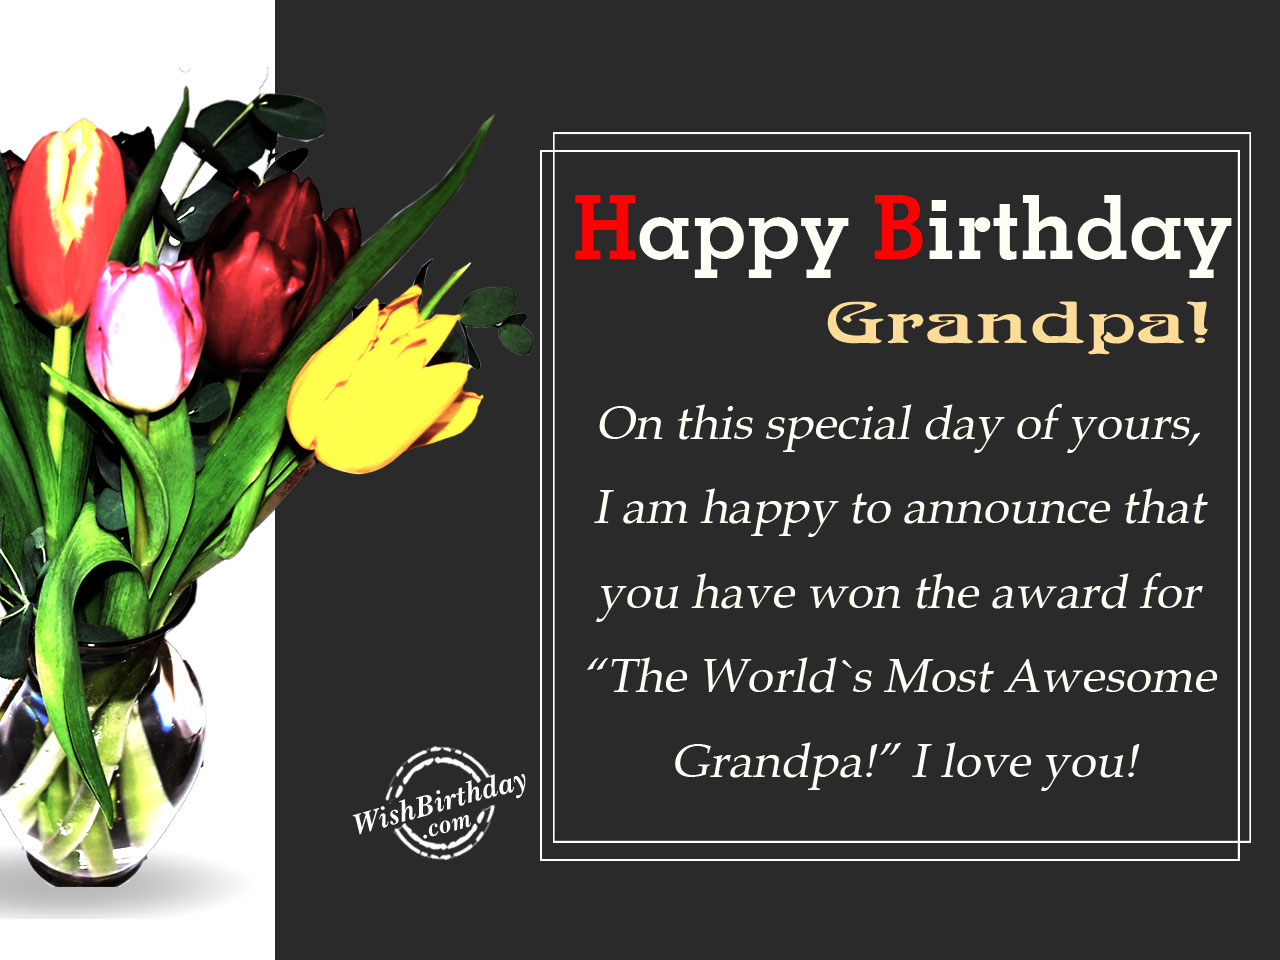 I Love My Grandpa Quotes Birthday Wishes For Grandfather  Birthday Images Pictures